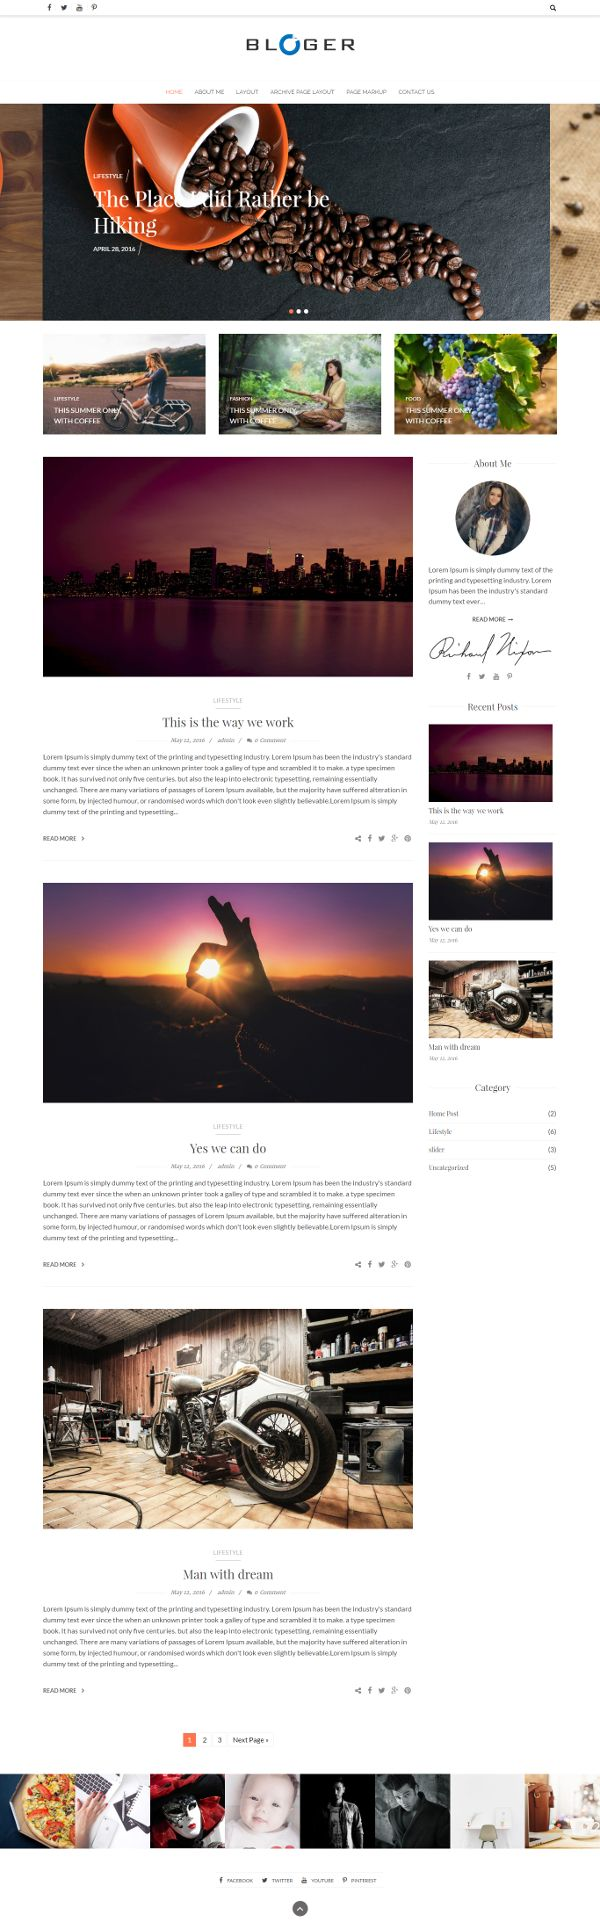 Blogger - Theme WordPress Gratis Untuk Blog